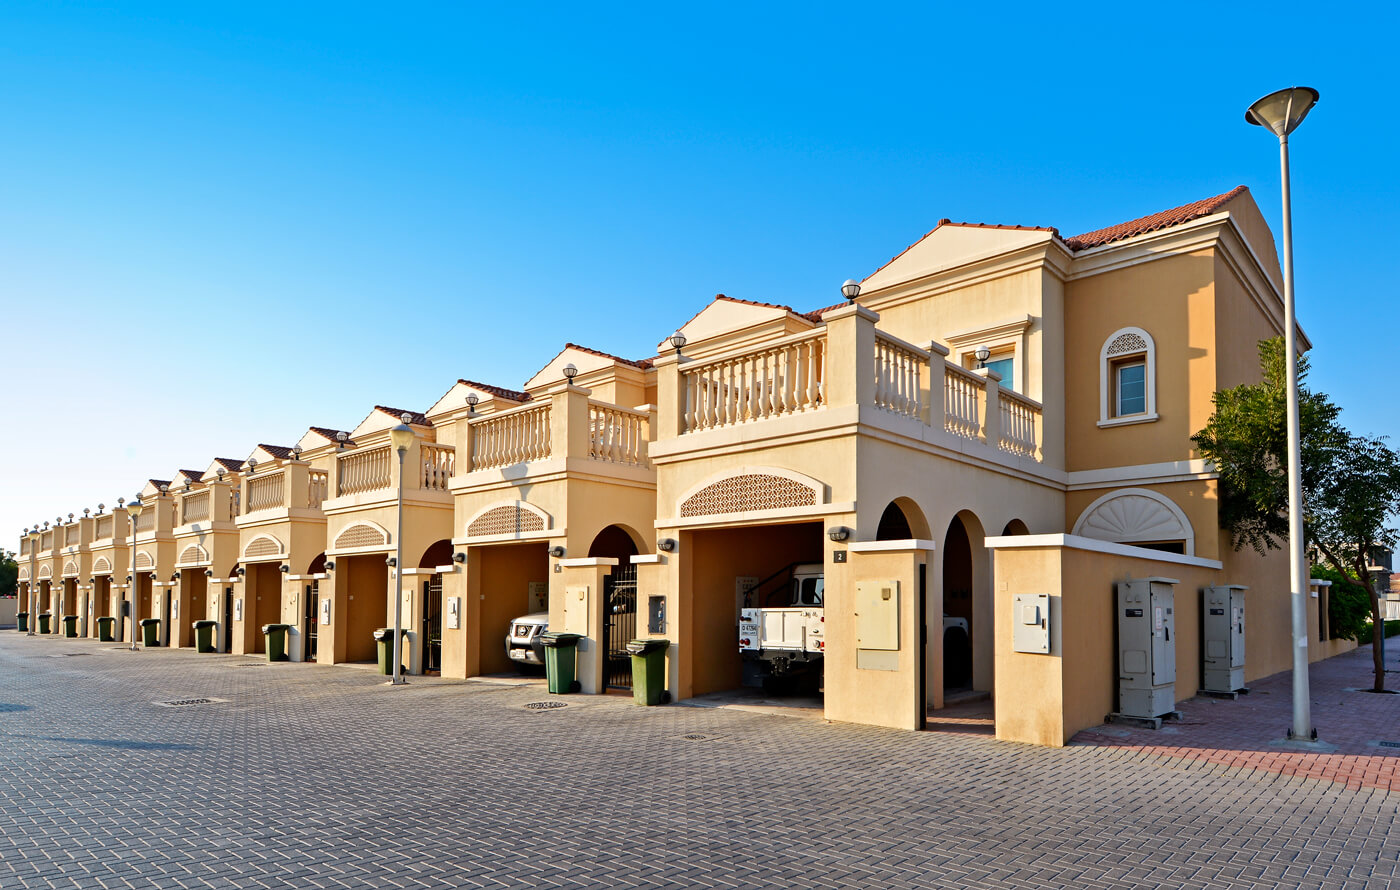 Looking for a Villa? Find one in Jumeirah Village